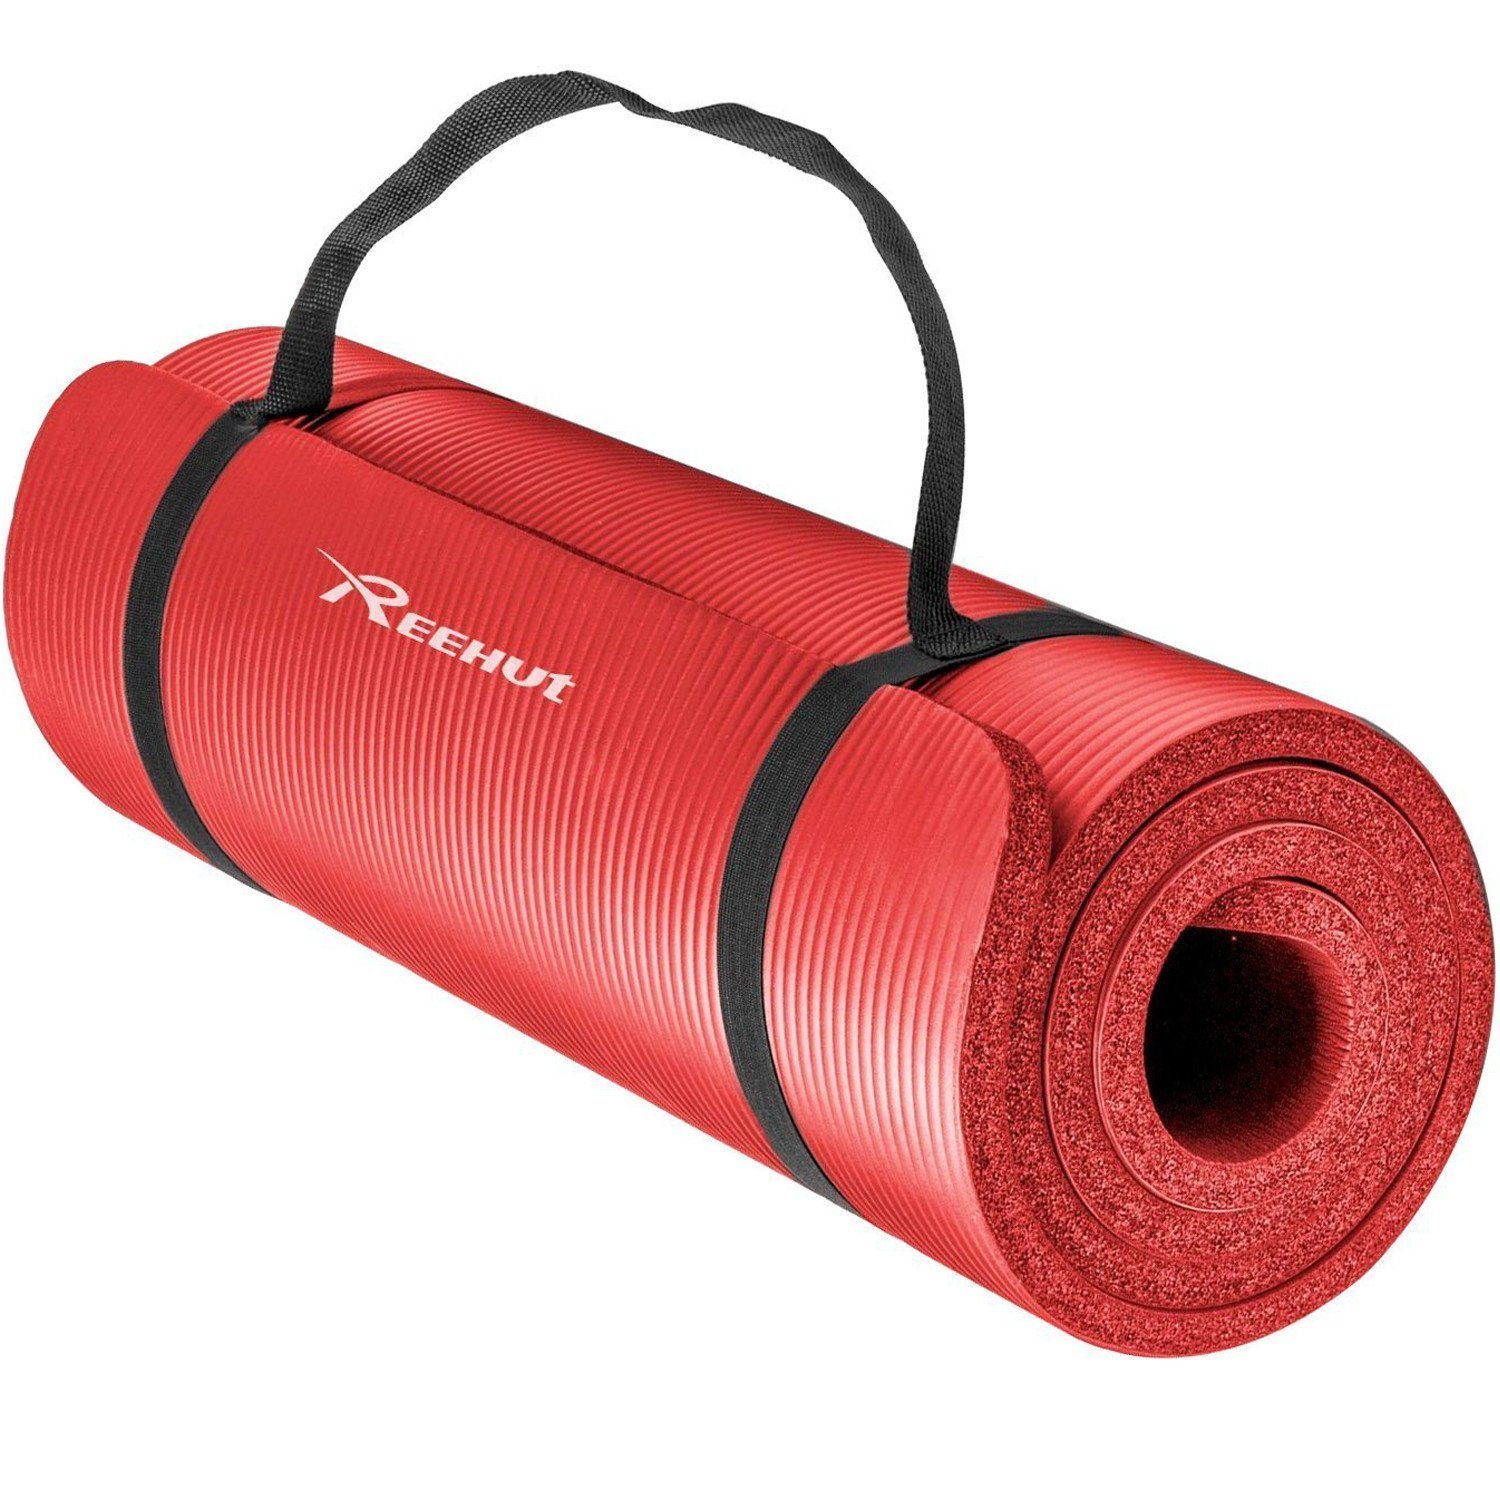 better price for cheap price size 7 Best Gym Mats Reviewed in 2018 | GarageGymPro